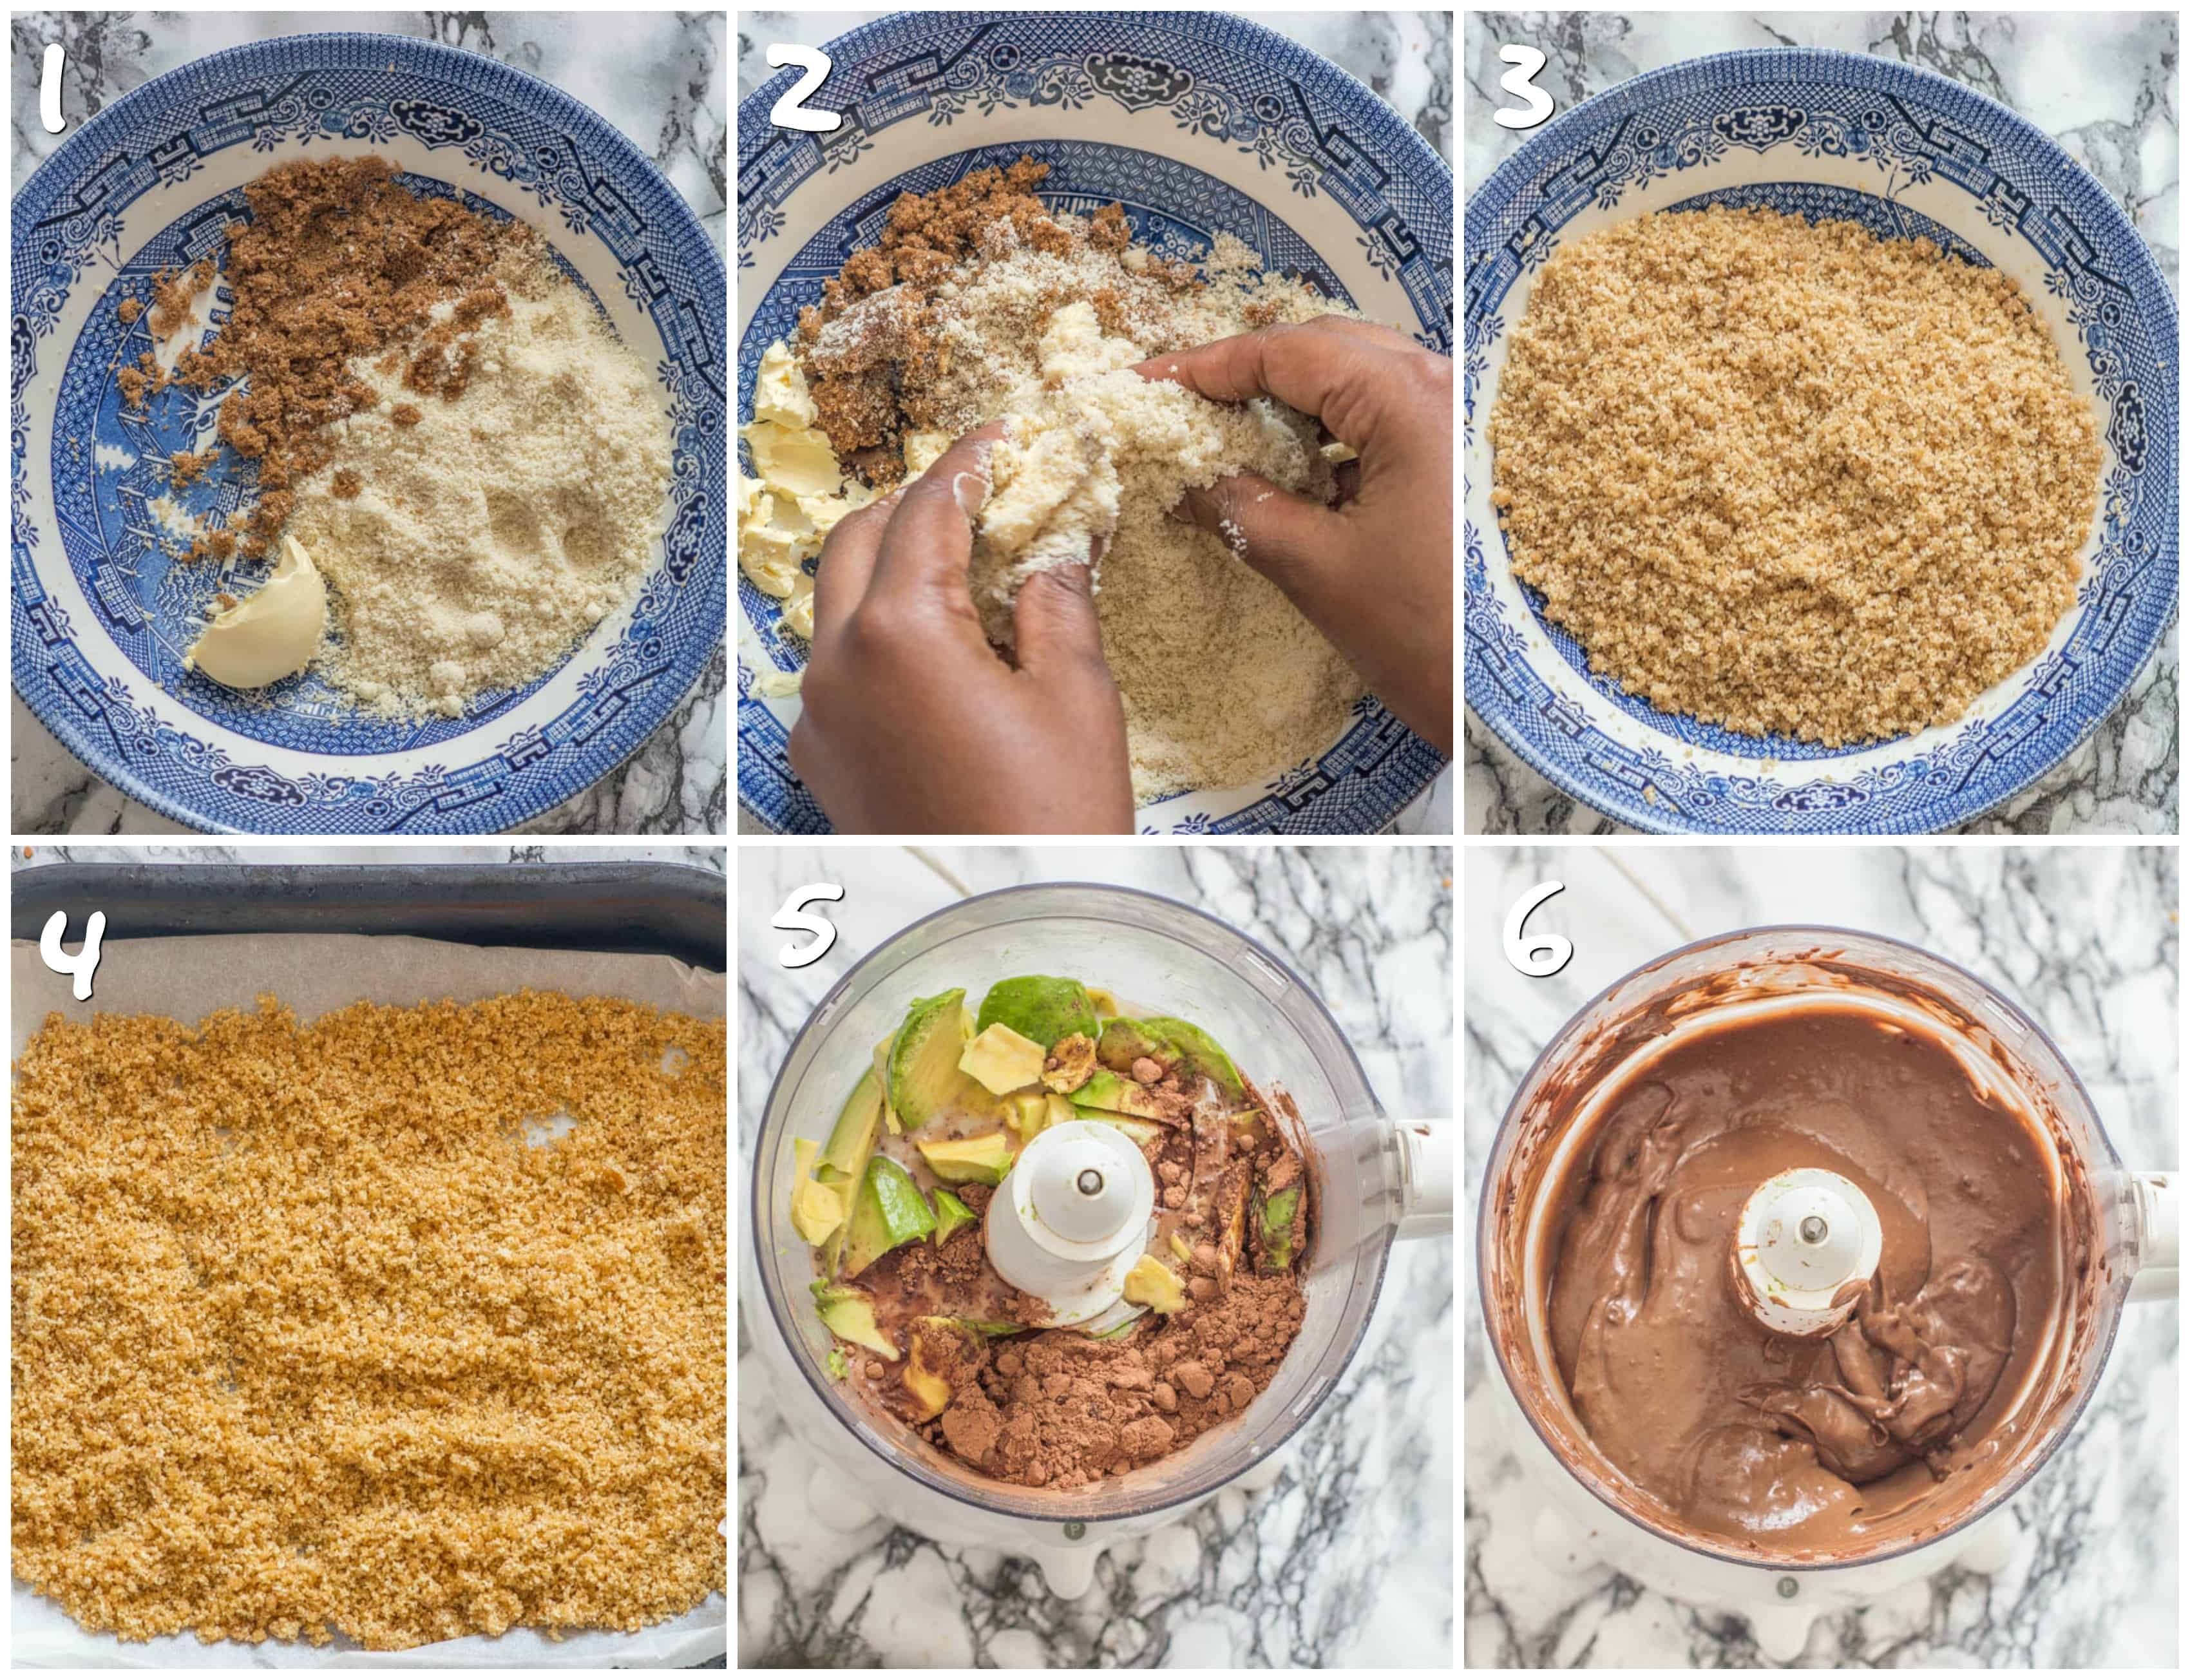 Steps 1-6 making the pudding and crumble mix